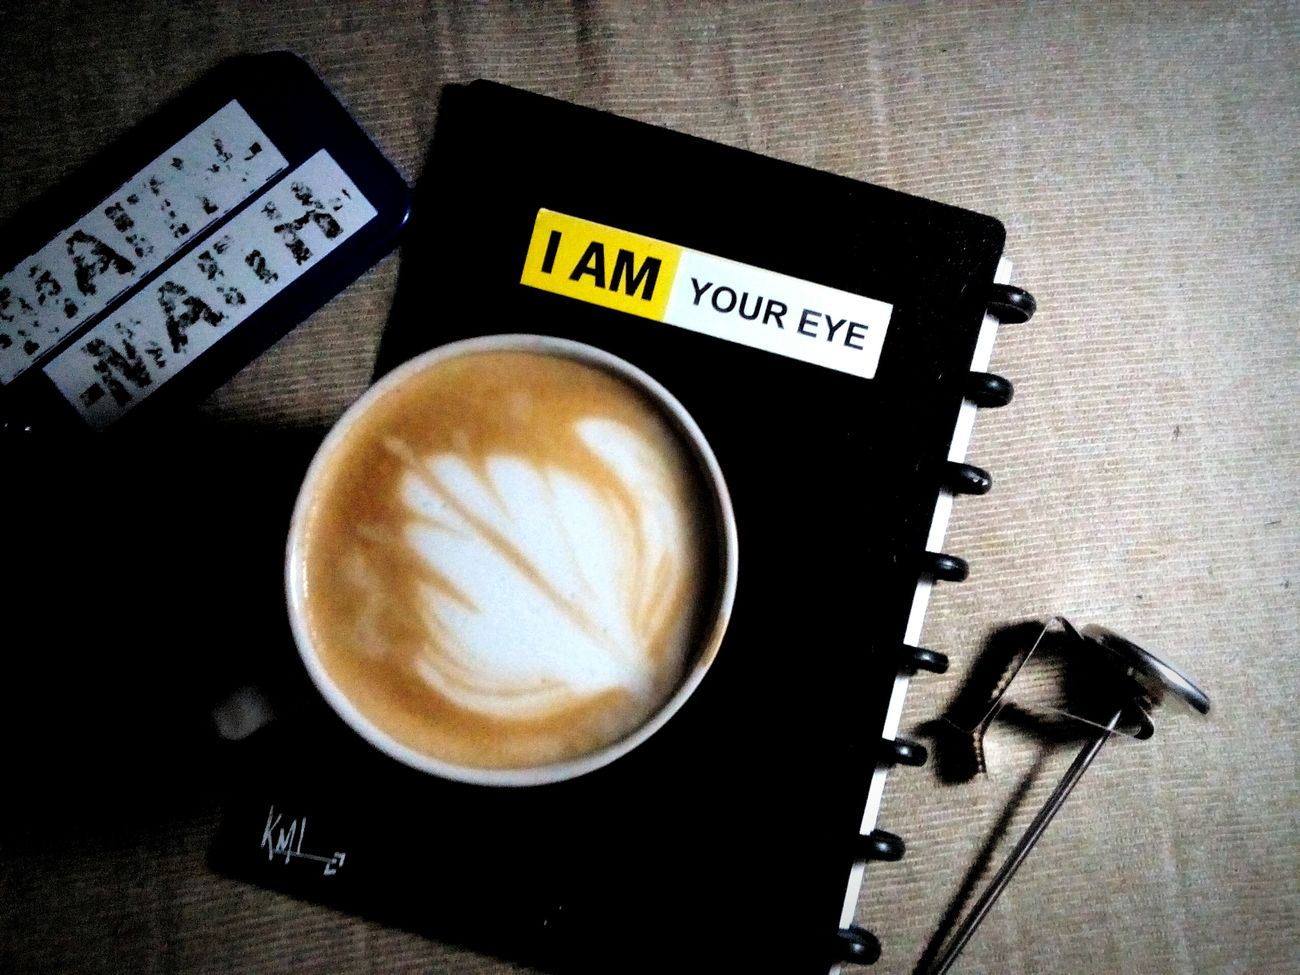 Coffee Coffeeaddict Latteart Youngartists Photograph Photography Amateur Amateurphotography Photo Drawpen Art Picture Youngartist Drawing Ngopi Timur Jakarta INDONESIA